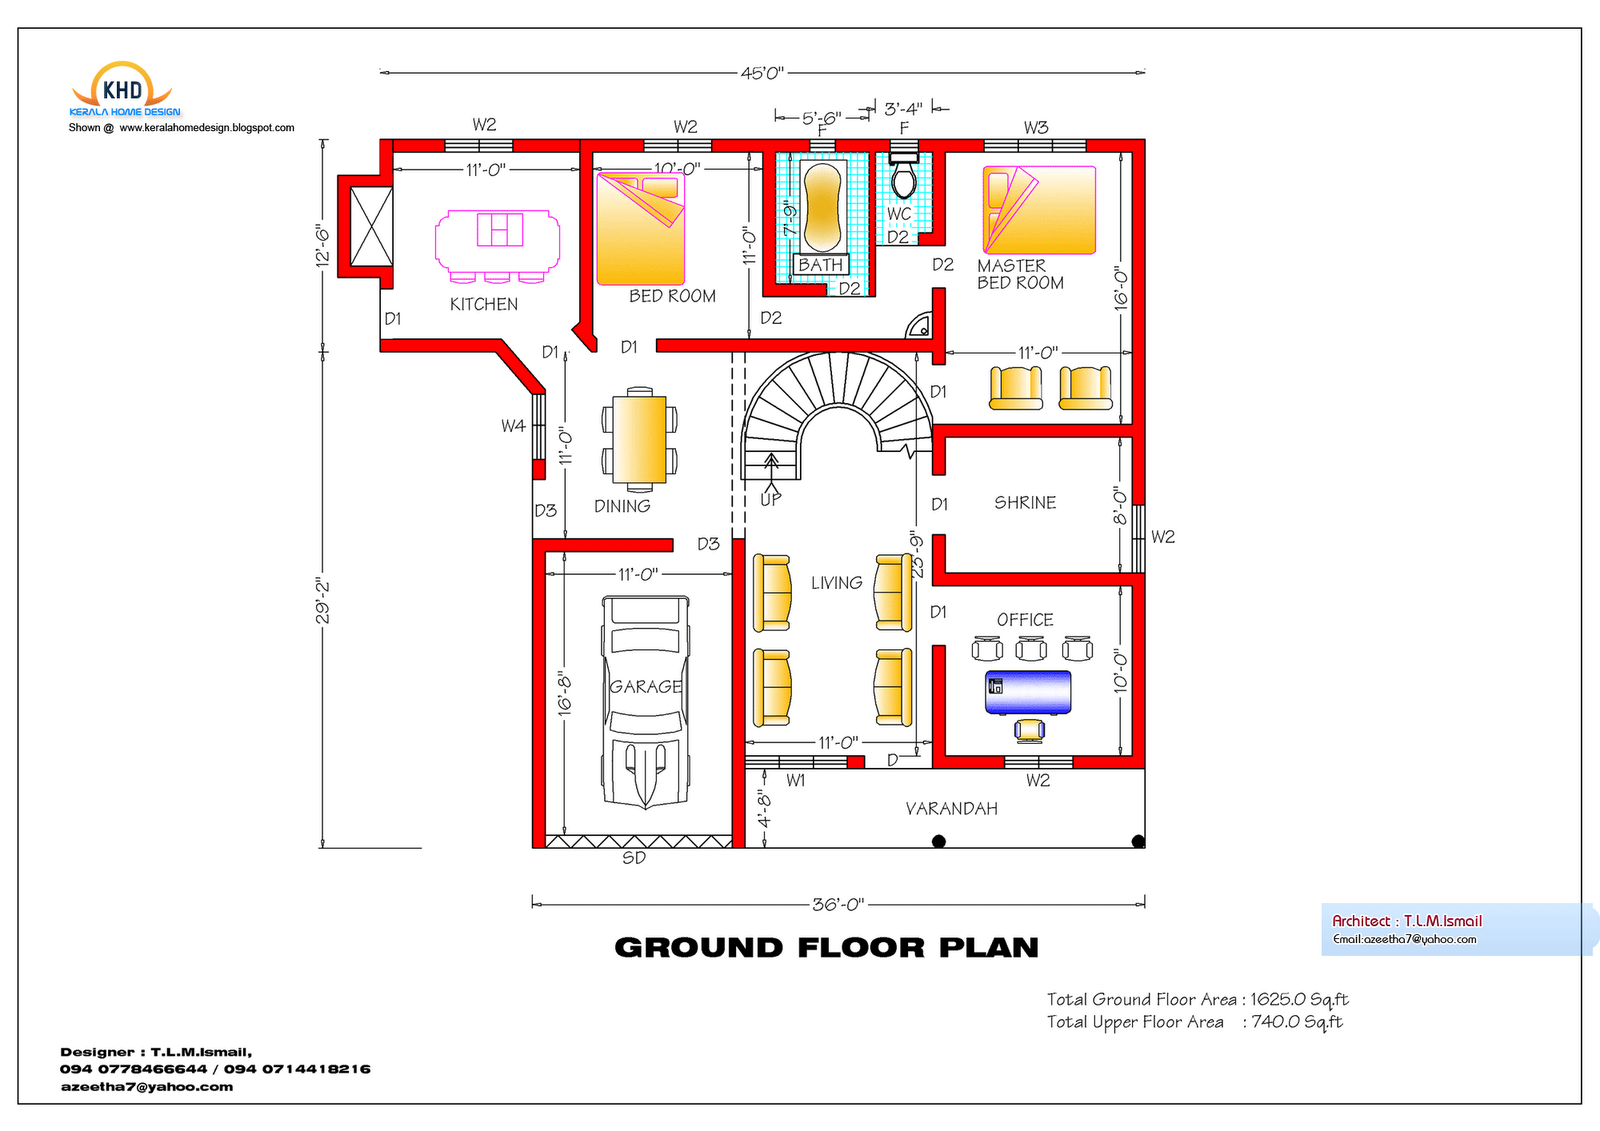 1500 sq ft house plans farm house 1500 sq ft house 1100 for 1500 sq ft ranch house plans with garage